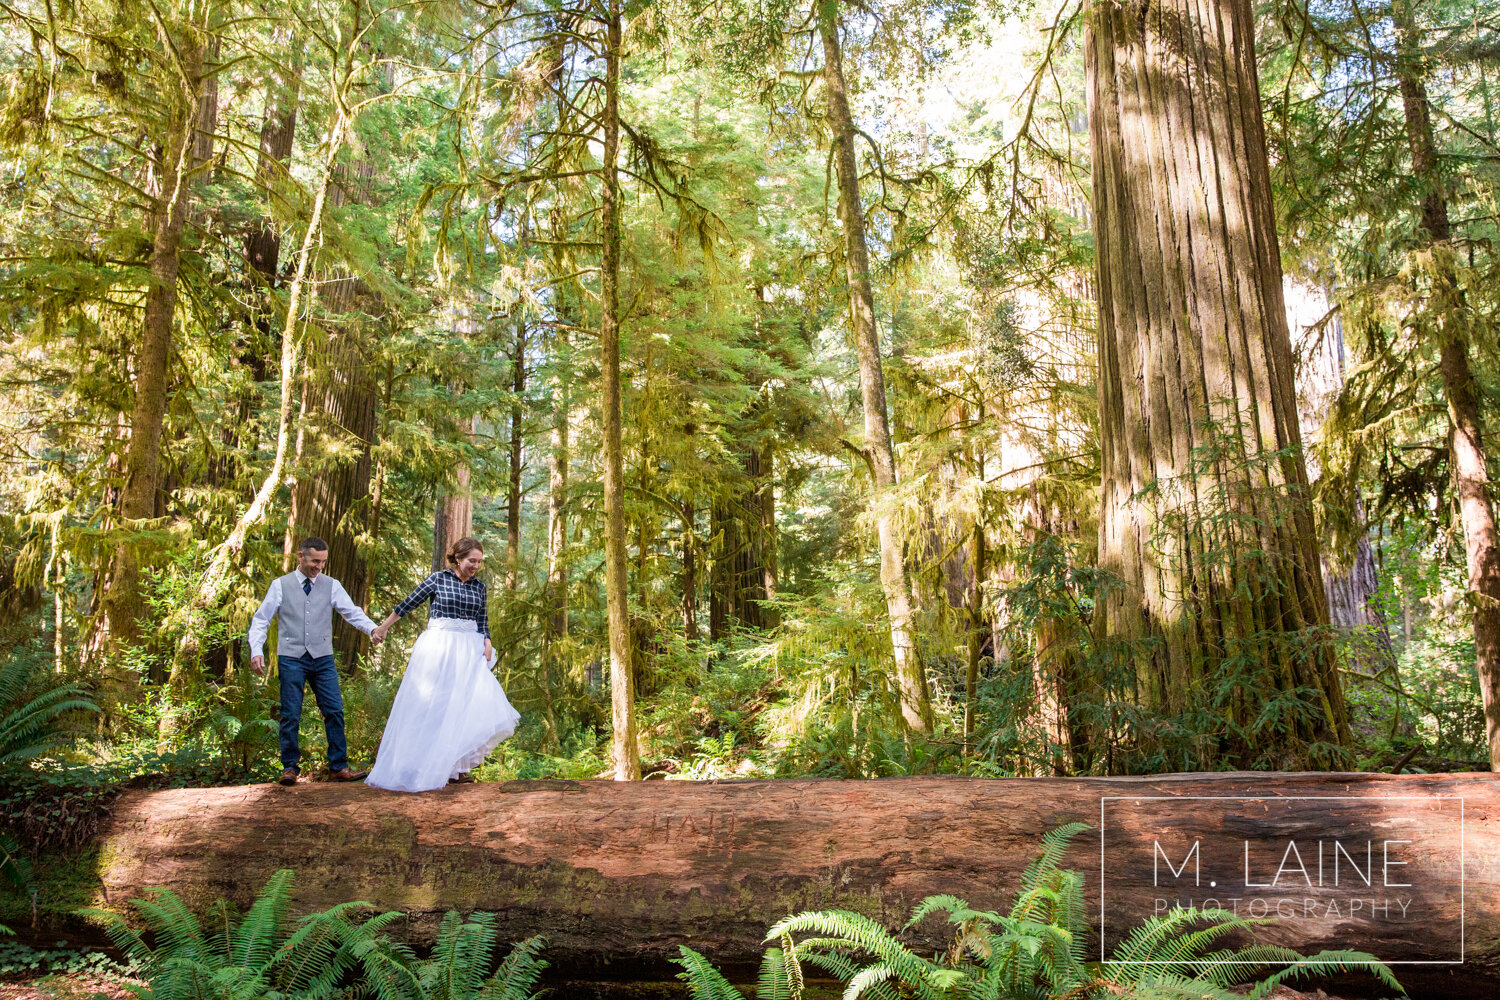 jedediah-smith-redwoods-state-park-wedding-3549.jpg